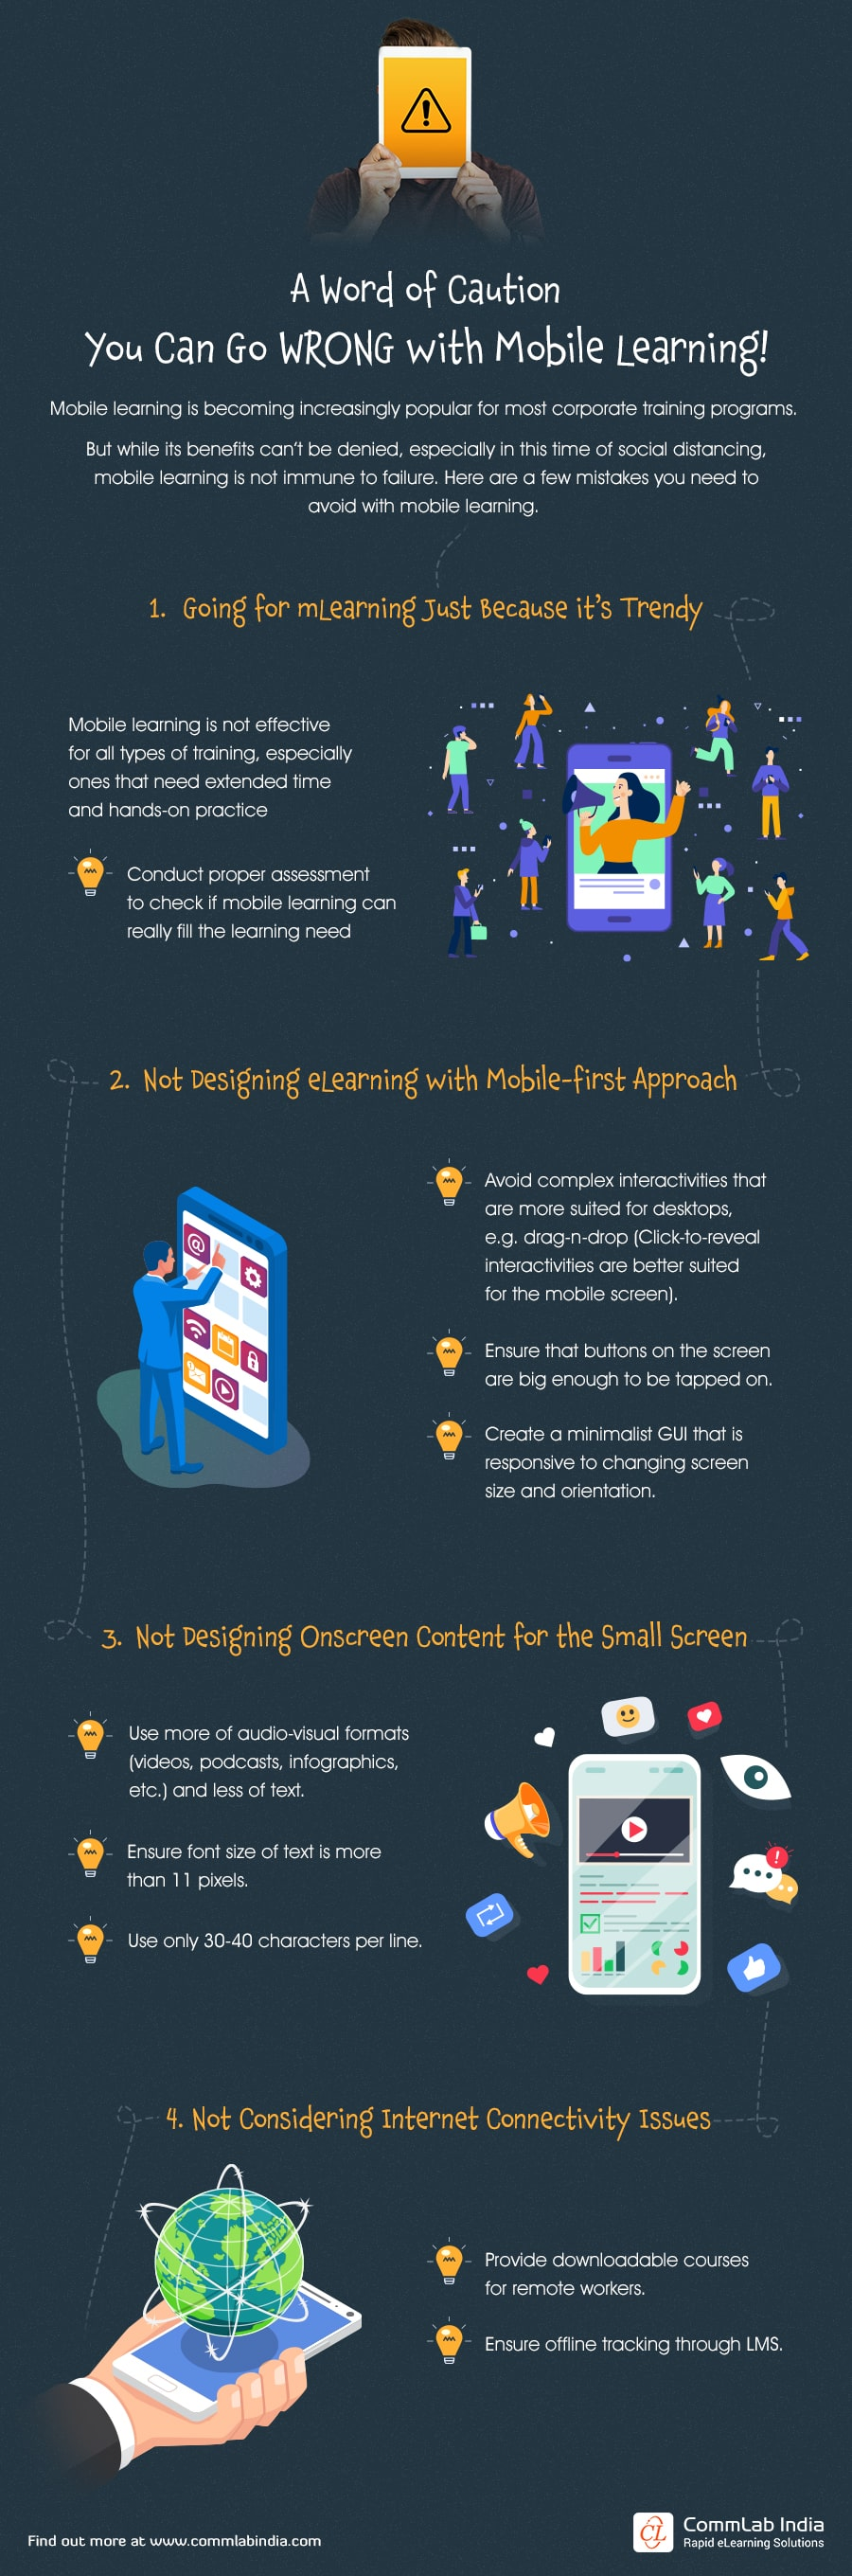 Mobile Learning: When Can mLearning Fail to Live up to Its Expectations?